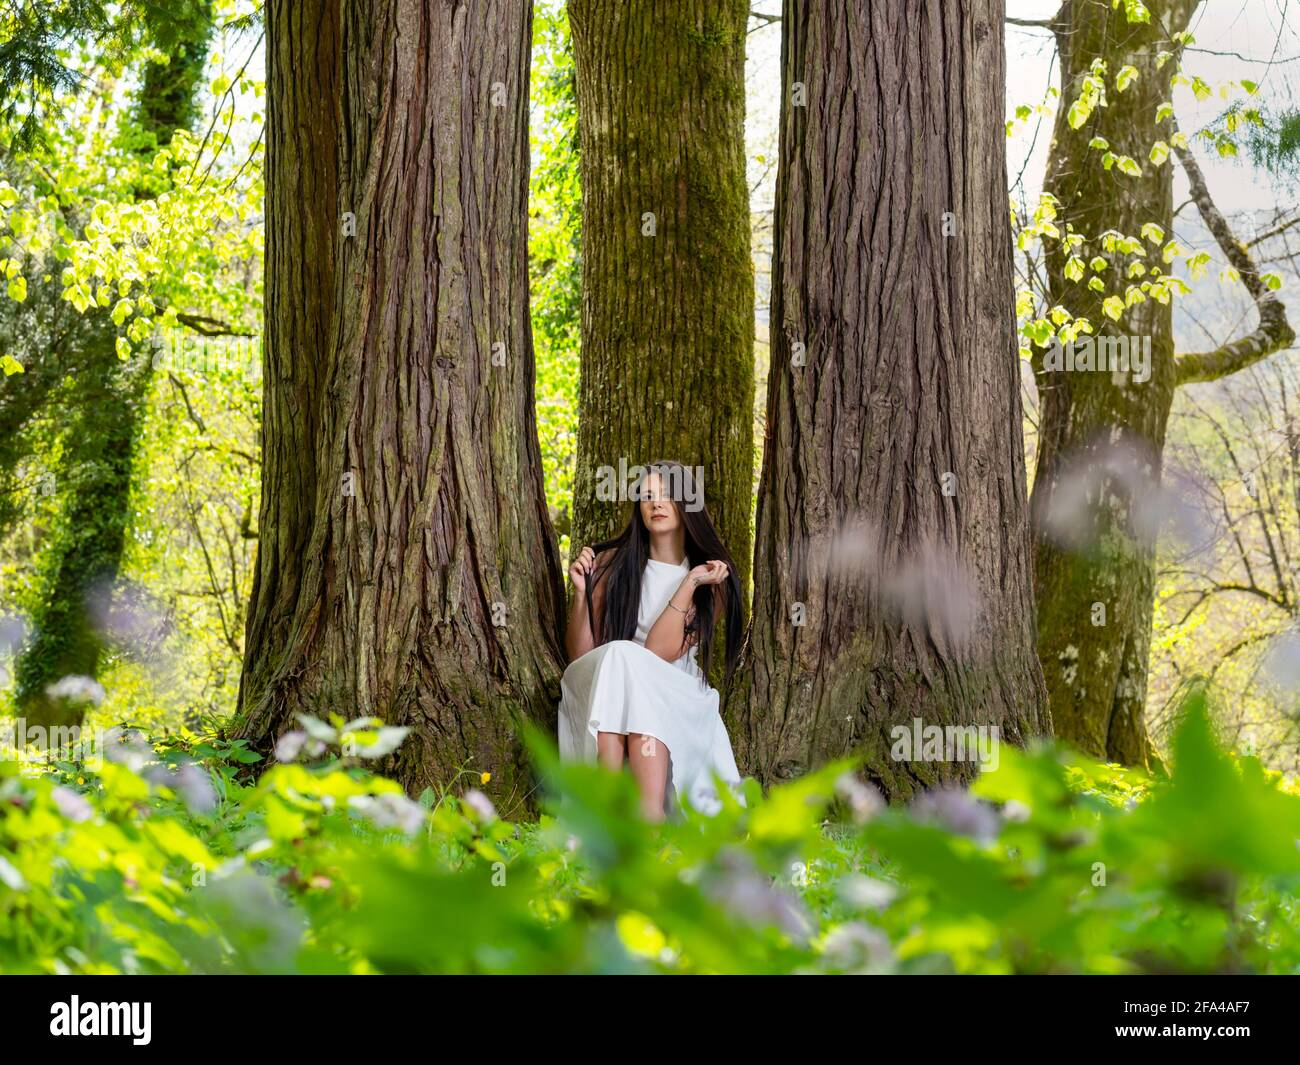 Young woman in nature sitting seated low between amongst big trees facing front frontal view serious eyeshot eyes eye contact looking at camera Stock Photo